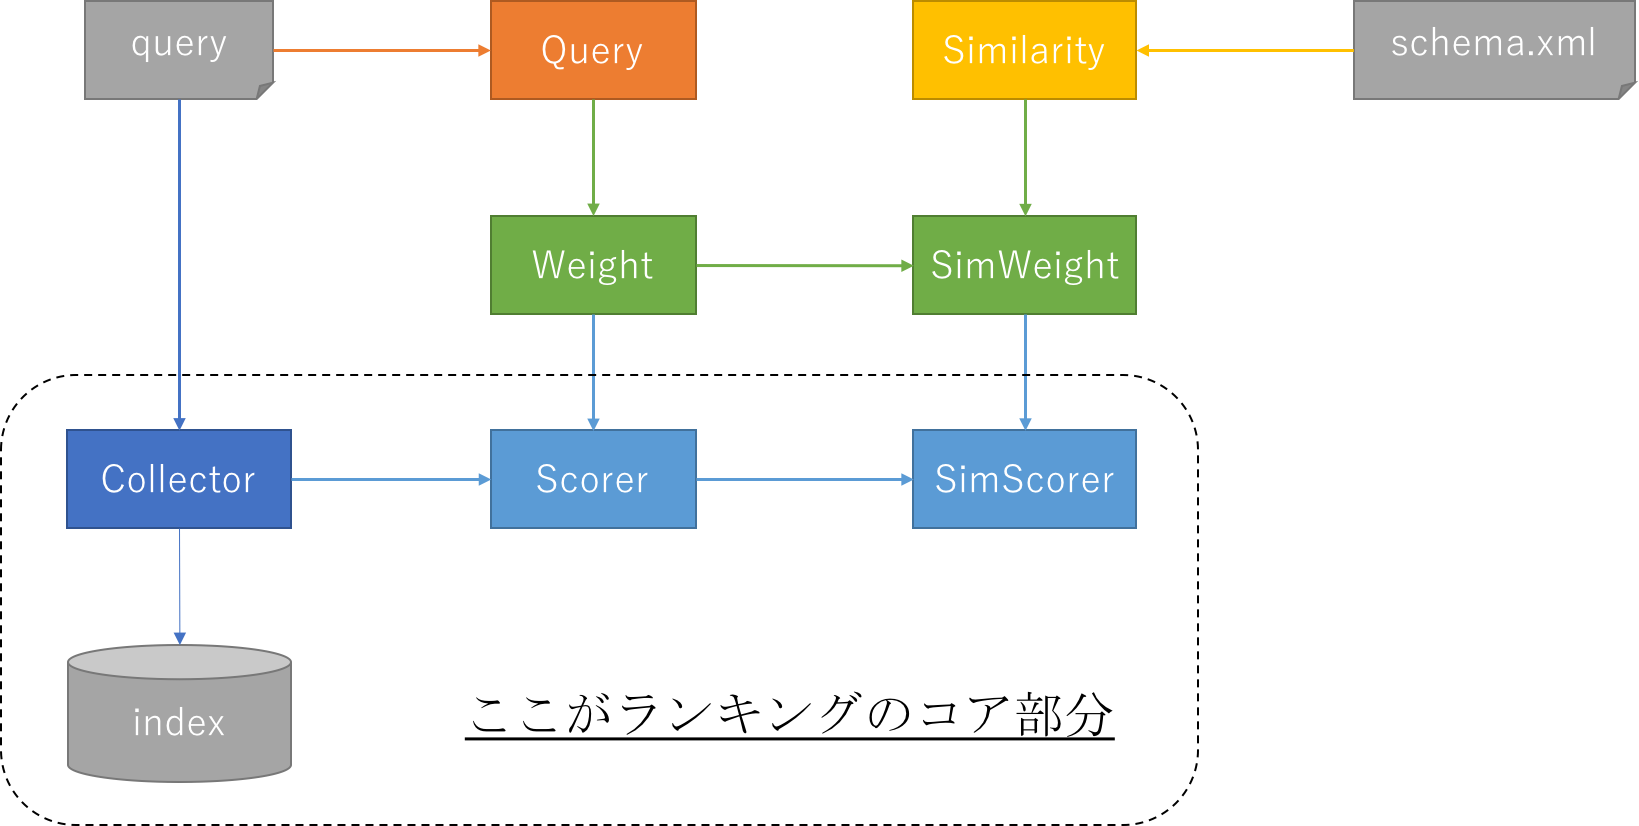 solr_ranking_components.png